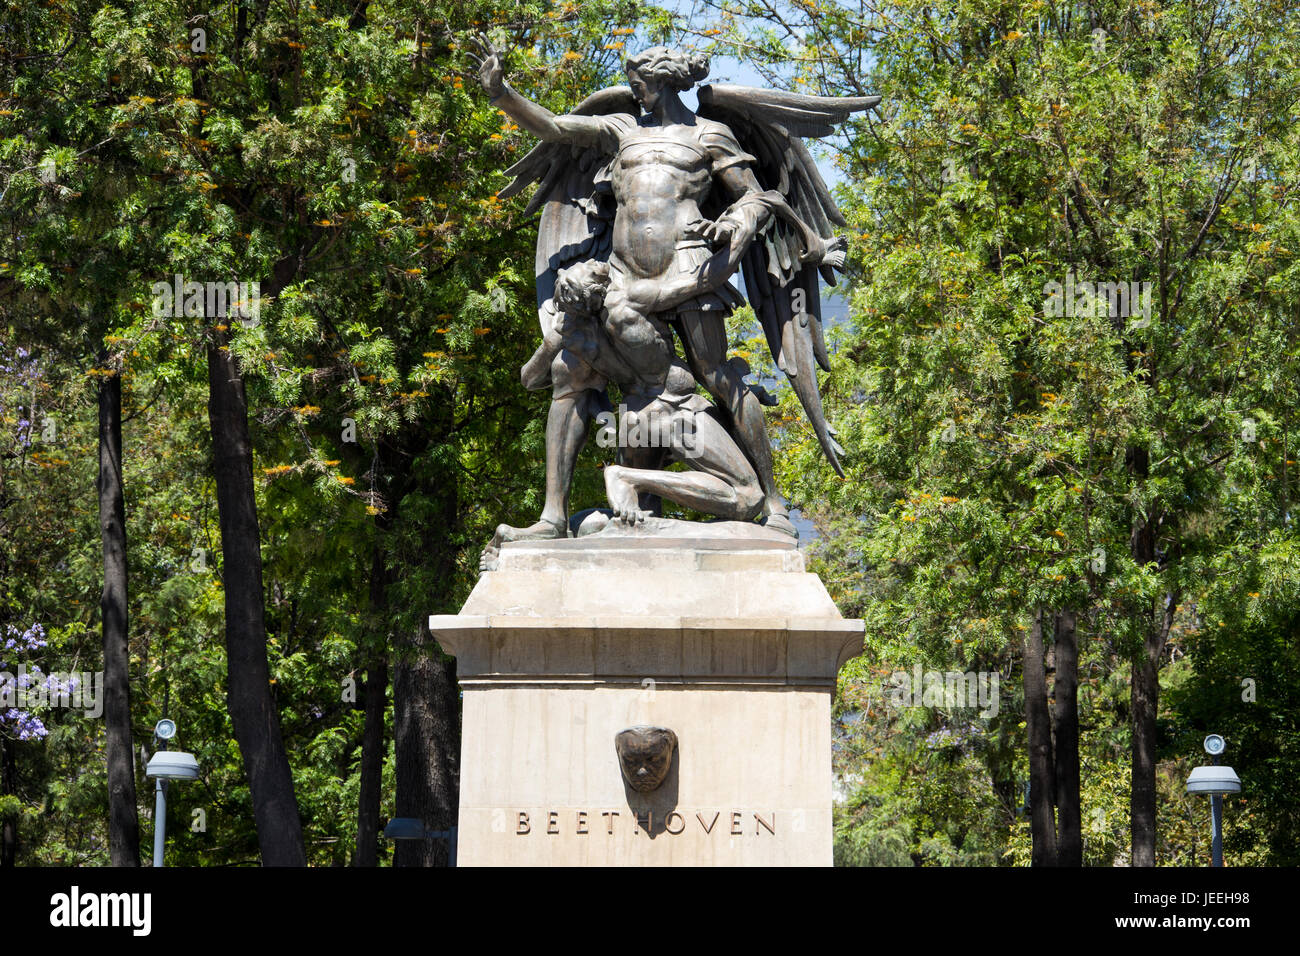 Monument to Beethoven by Theodor von Gosen, Alameda Central Park, Mexico CIty, Mexico - Stock Image